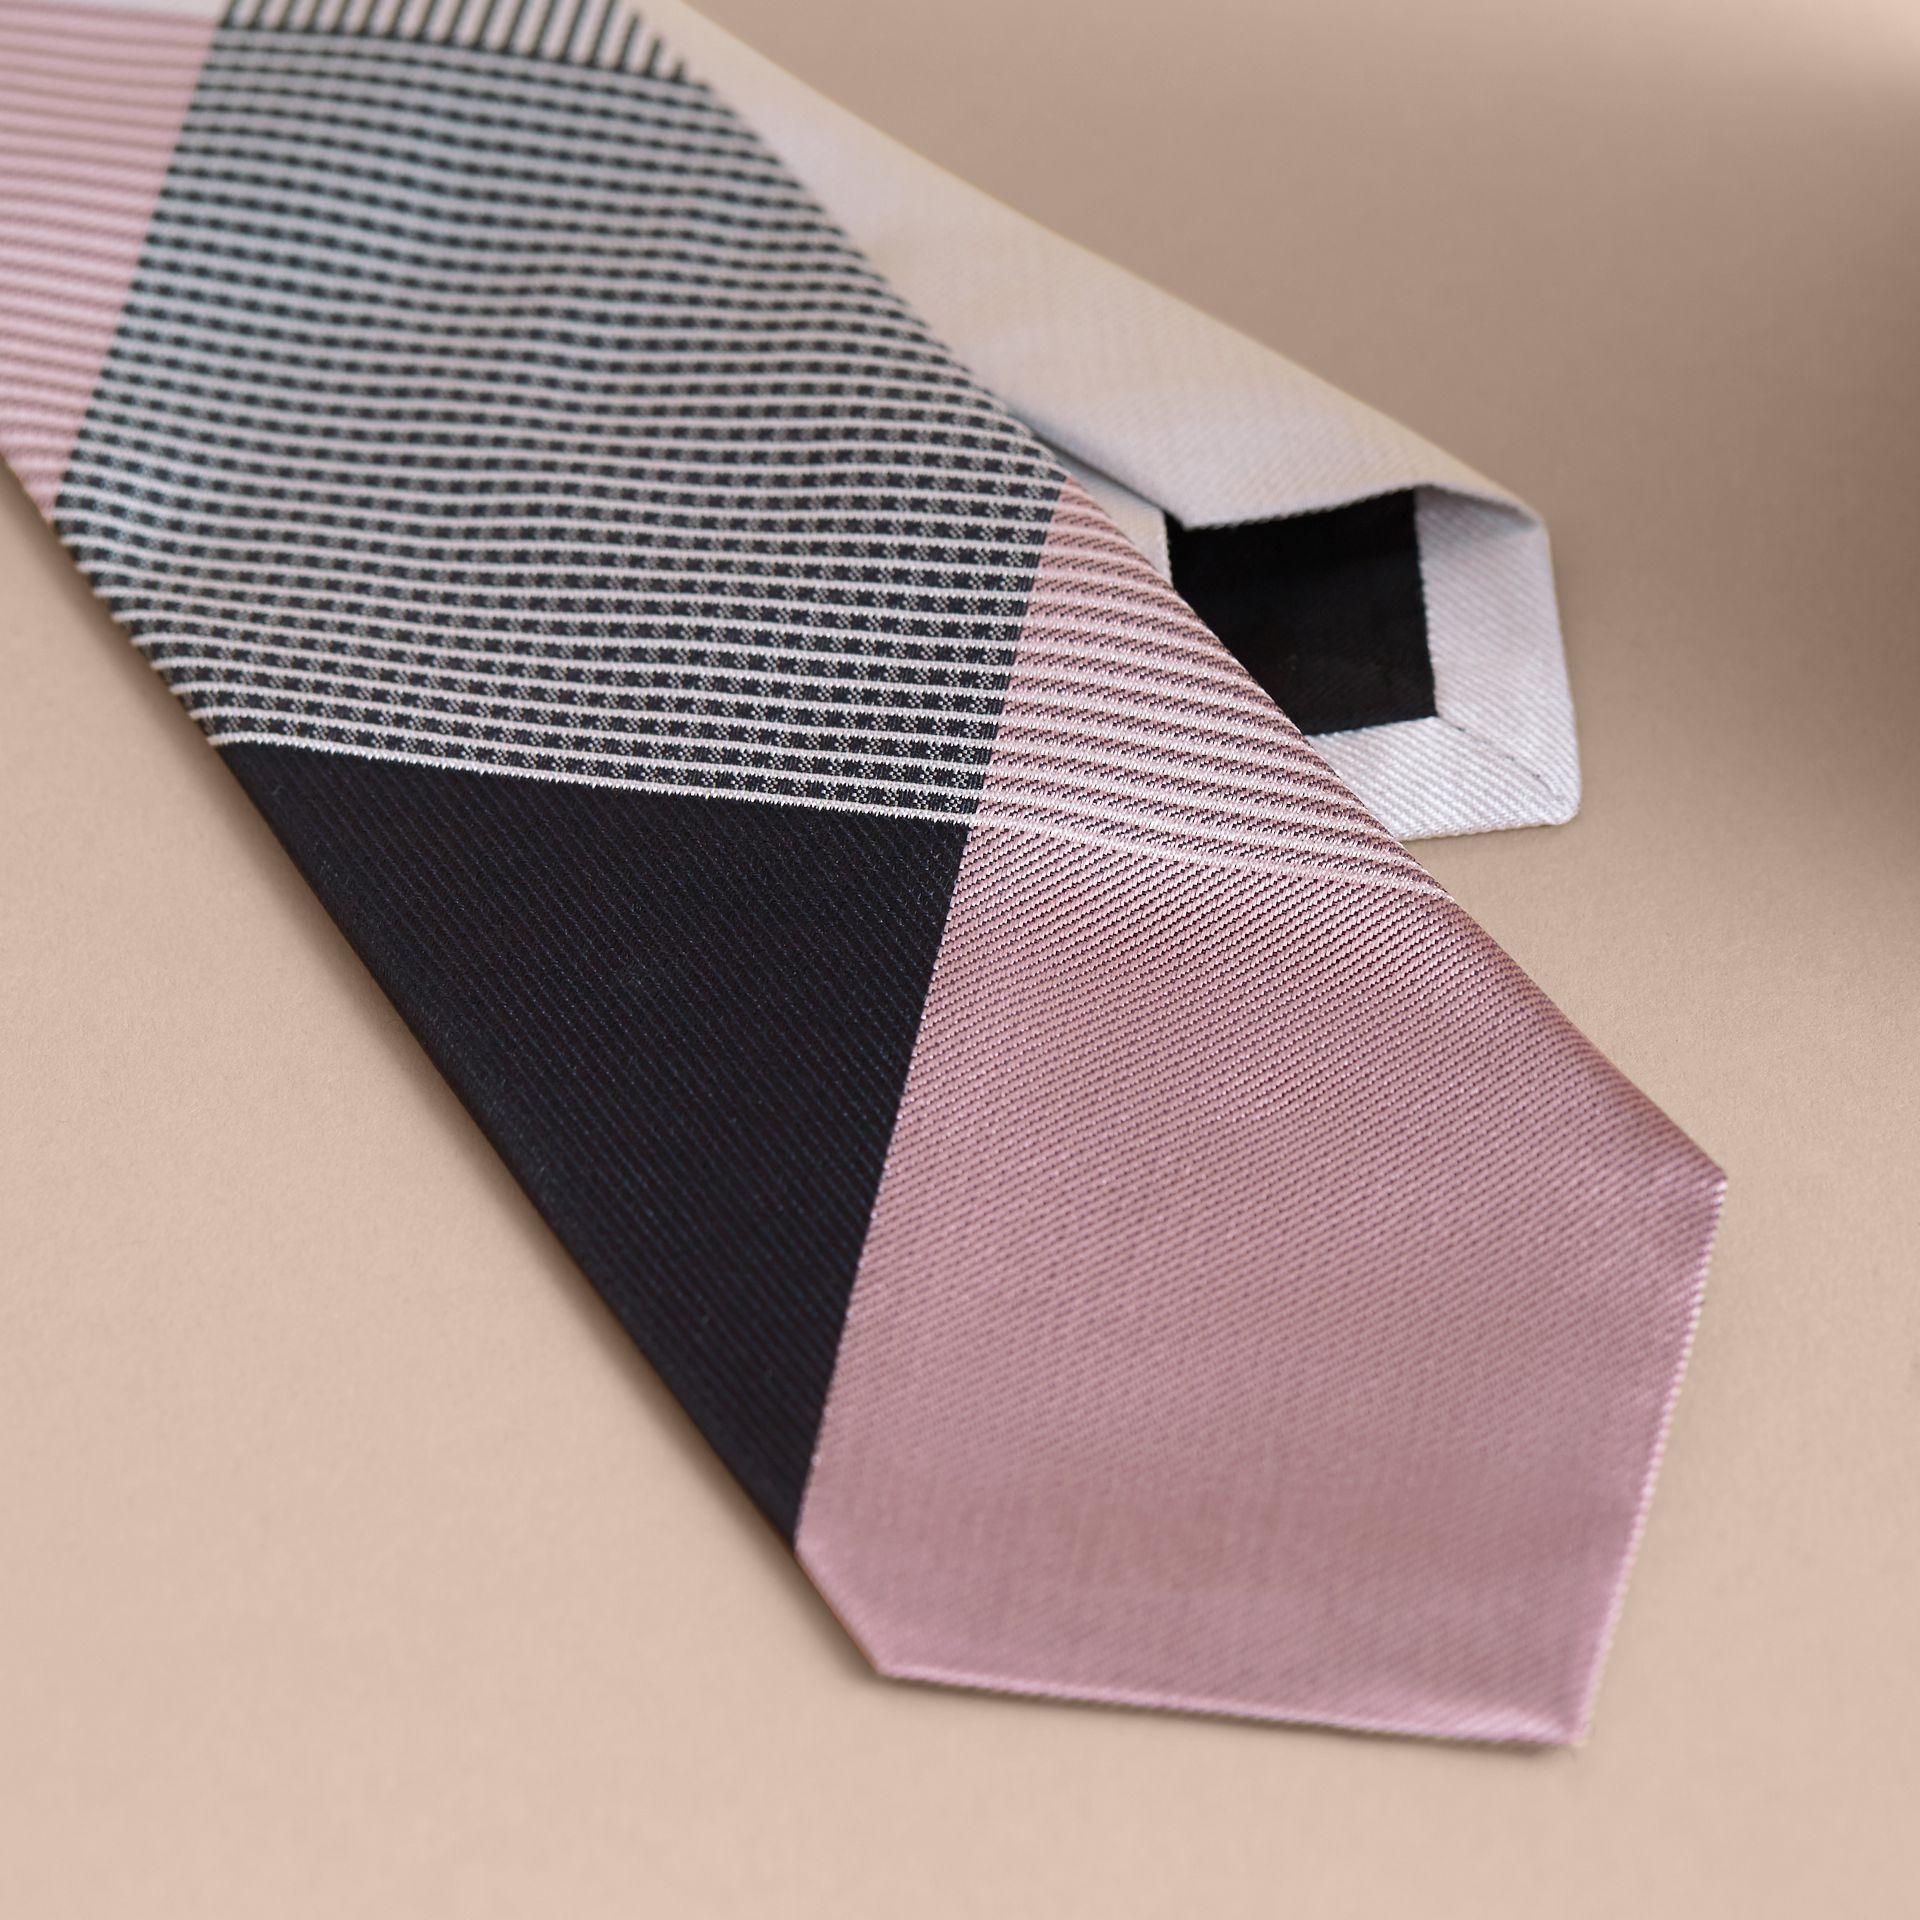 Modern Cut Gingham Check Silk Jacquard Tie in Apricot Pink - Men | Burberry Hong Kong - gallery image 2